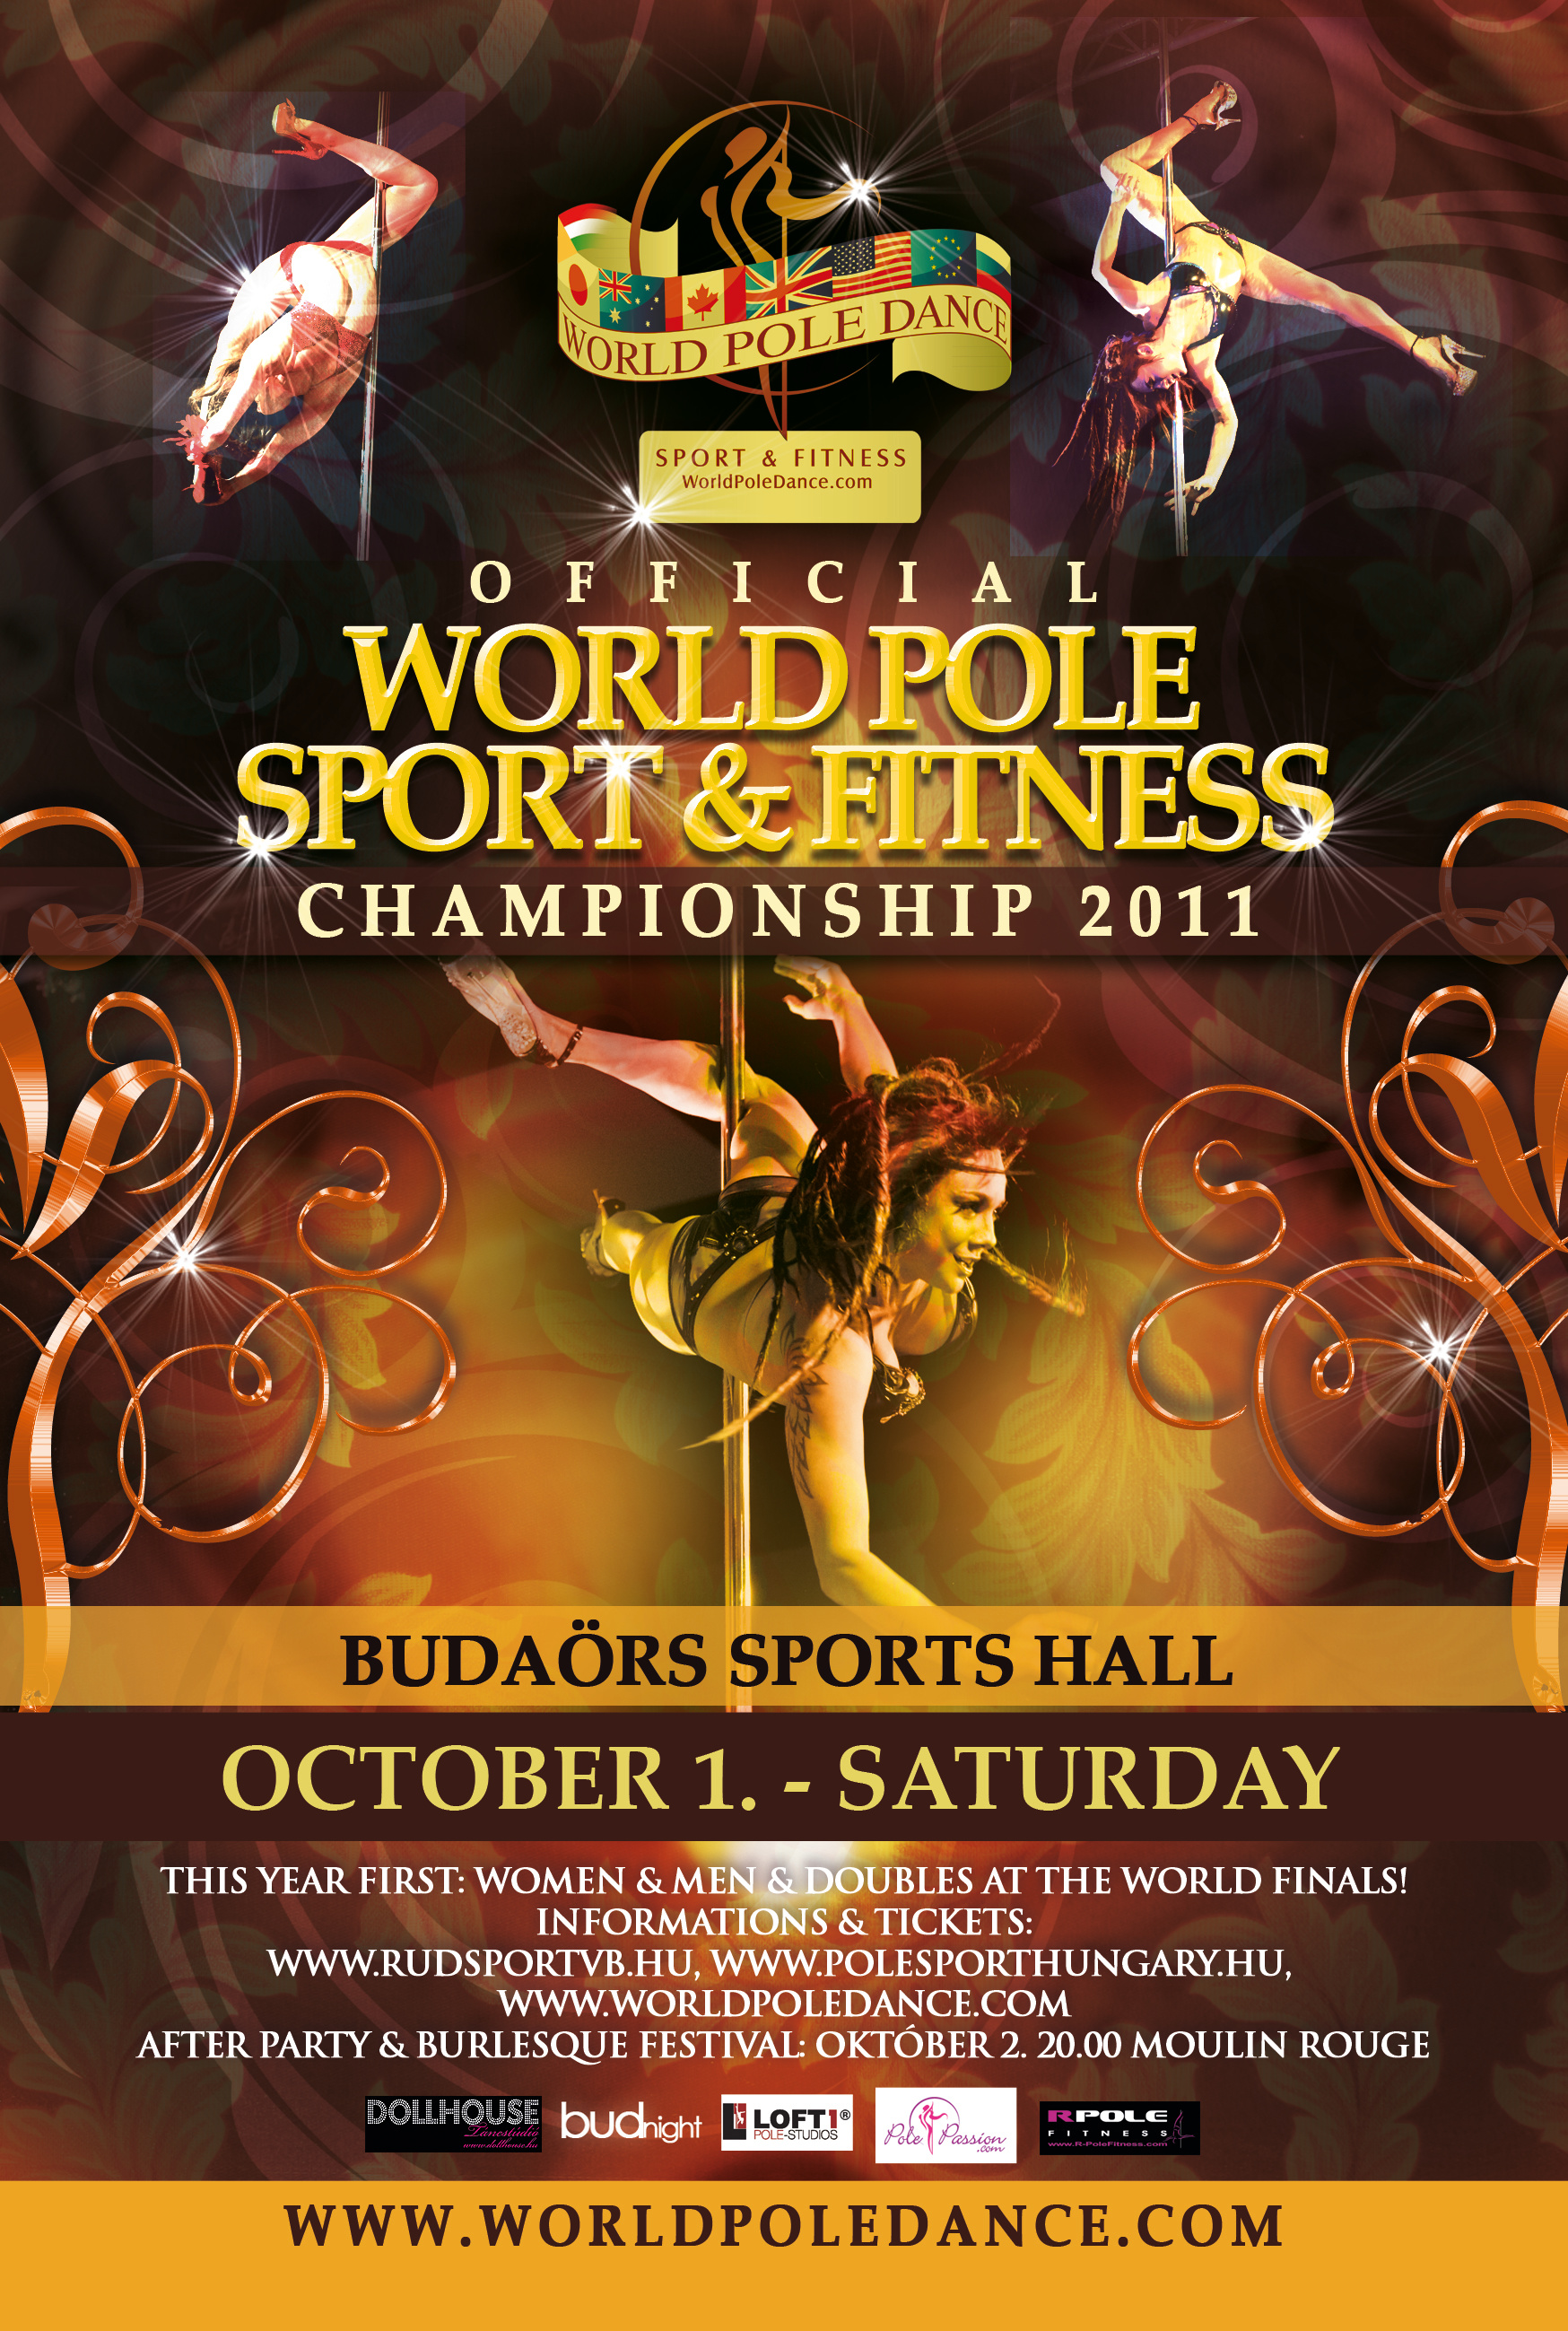 World Pole Dance Poster 2011